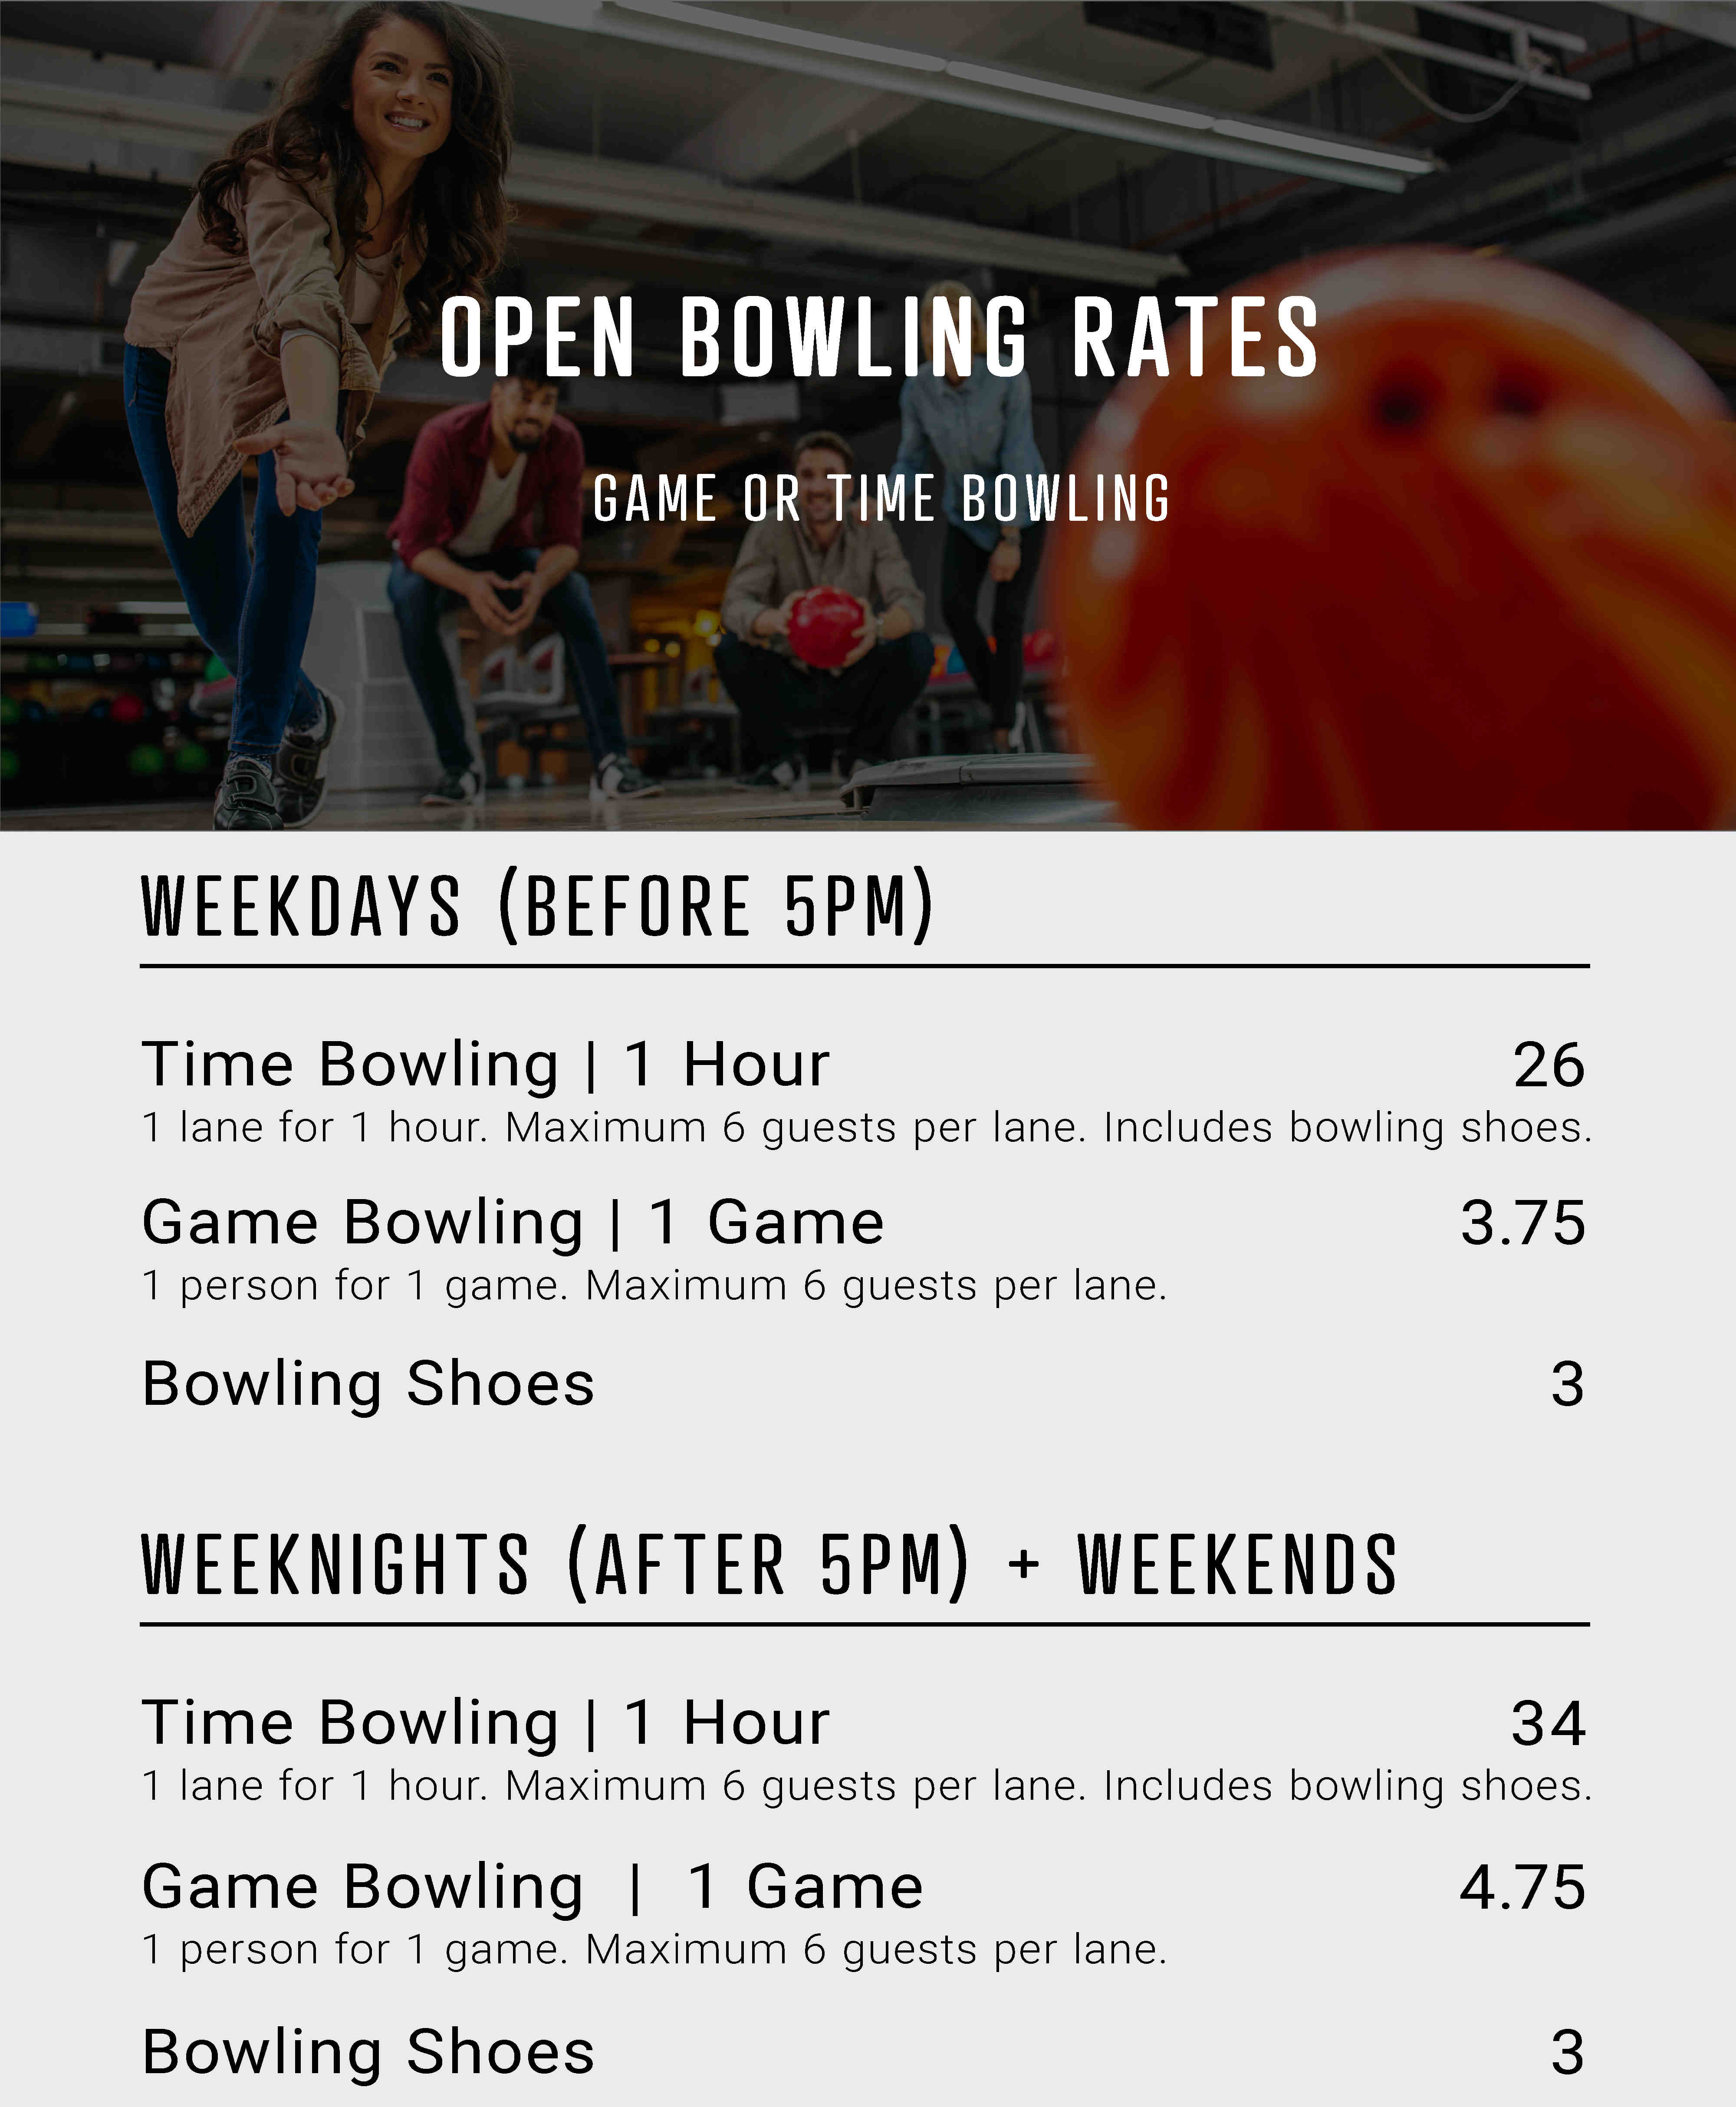 Open bowling - Game or time rates